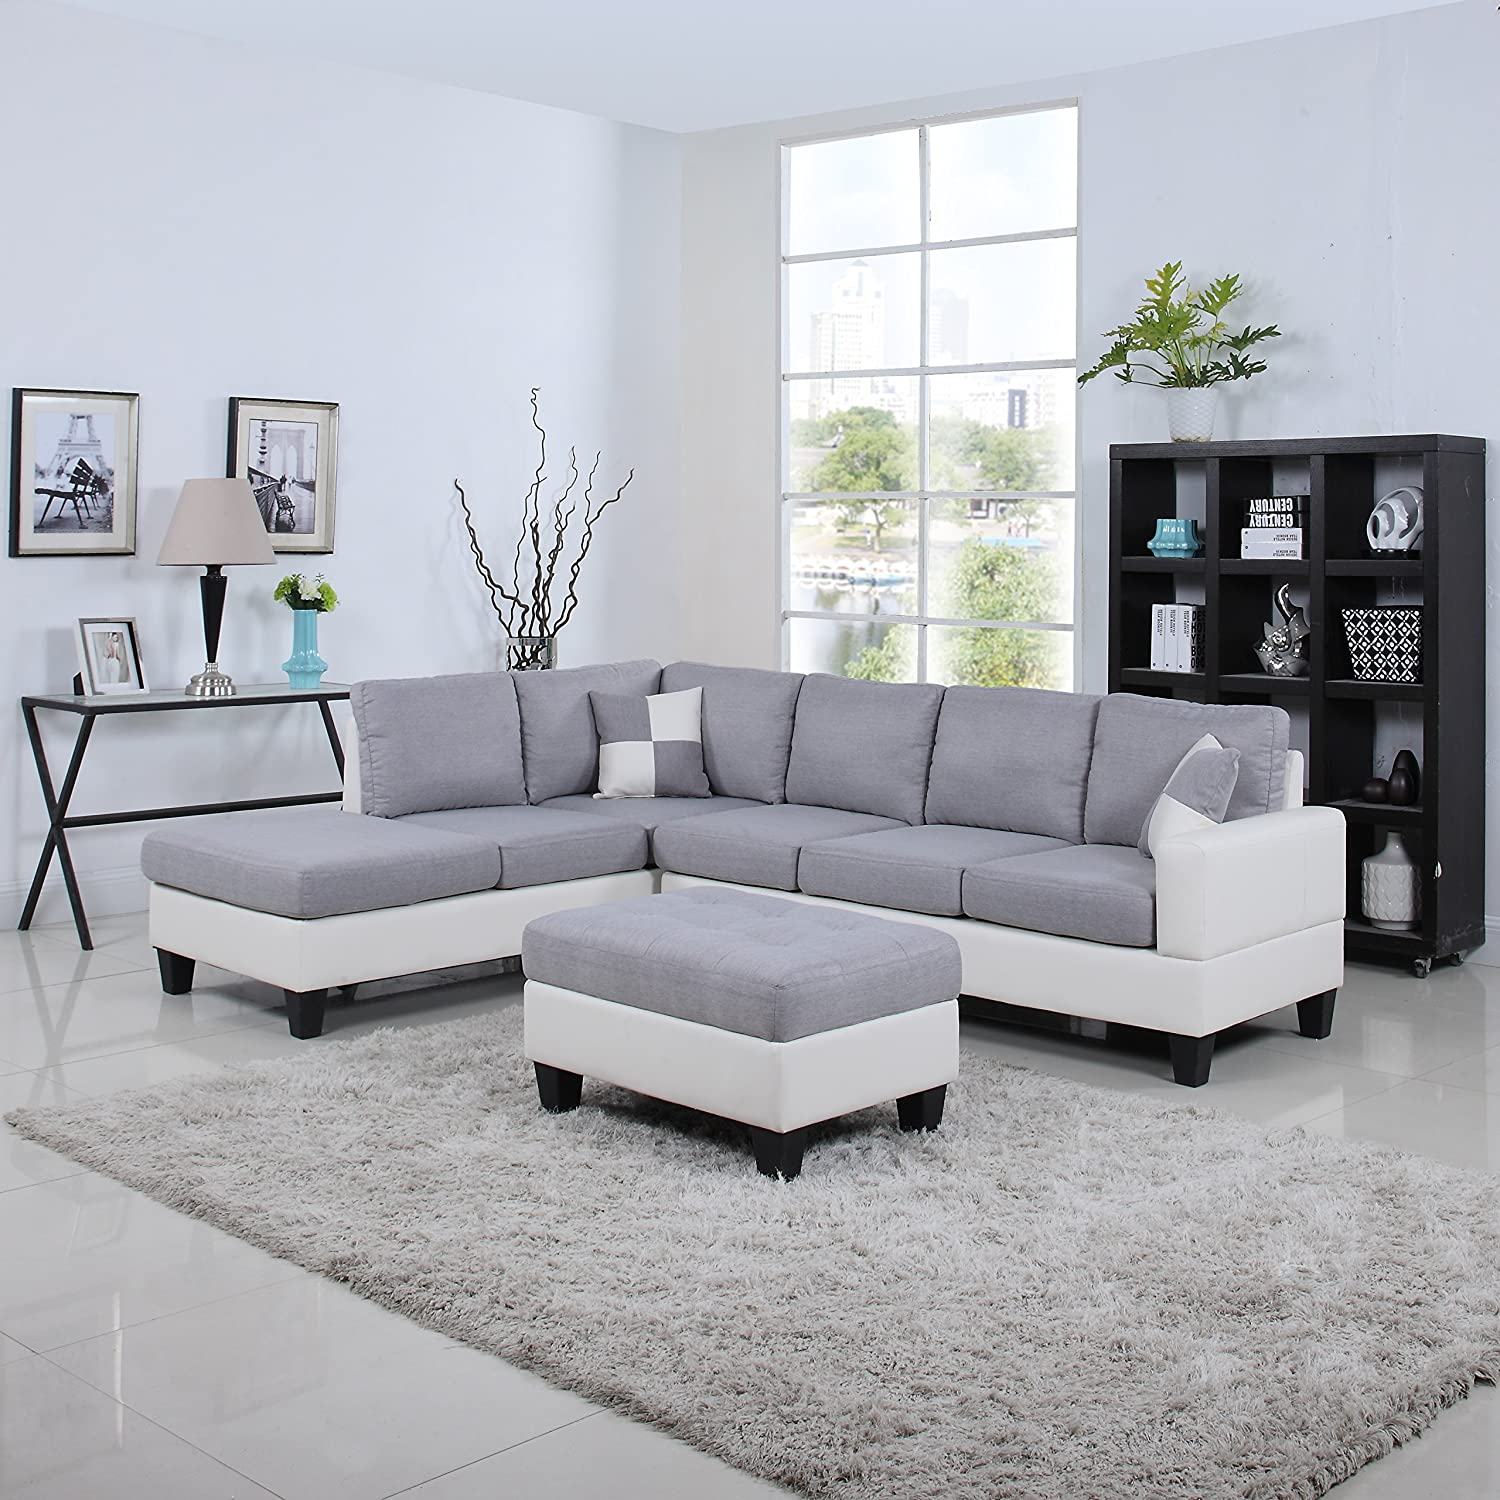 Amazon Com Classic Two Tone Large Linen Fabric And Bonded Leather Living Room Sectional Sofa White Light Grey Kitchen Dining